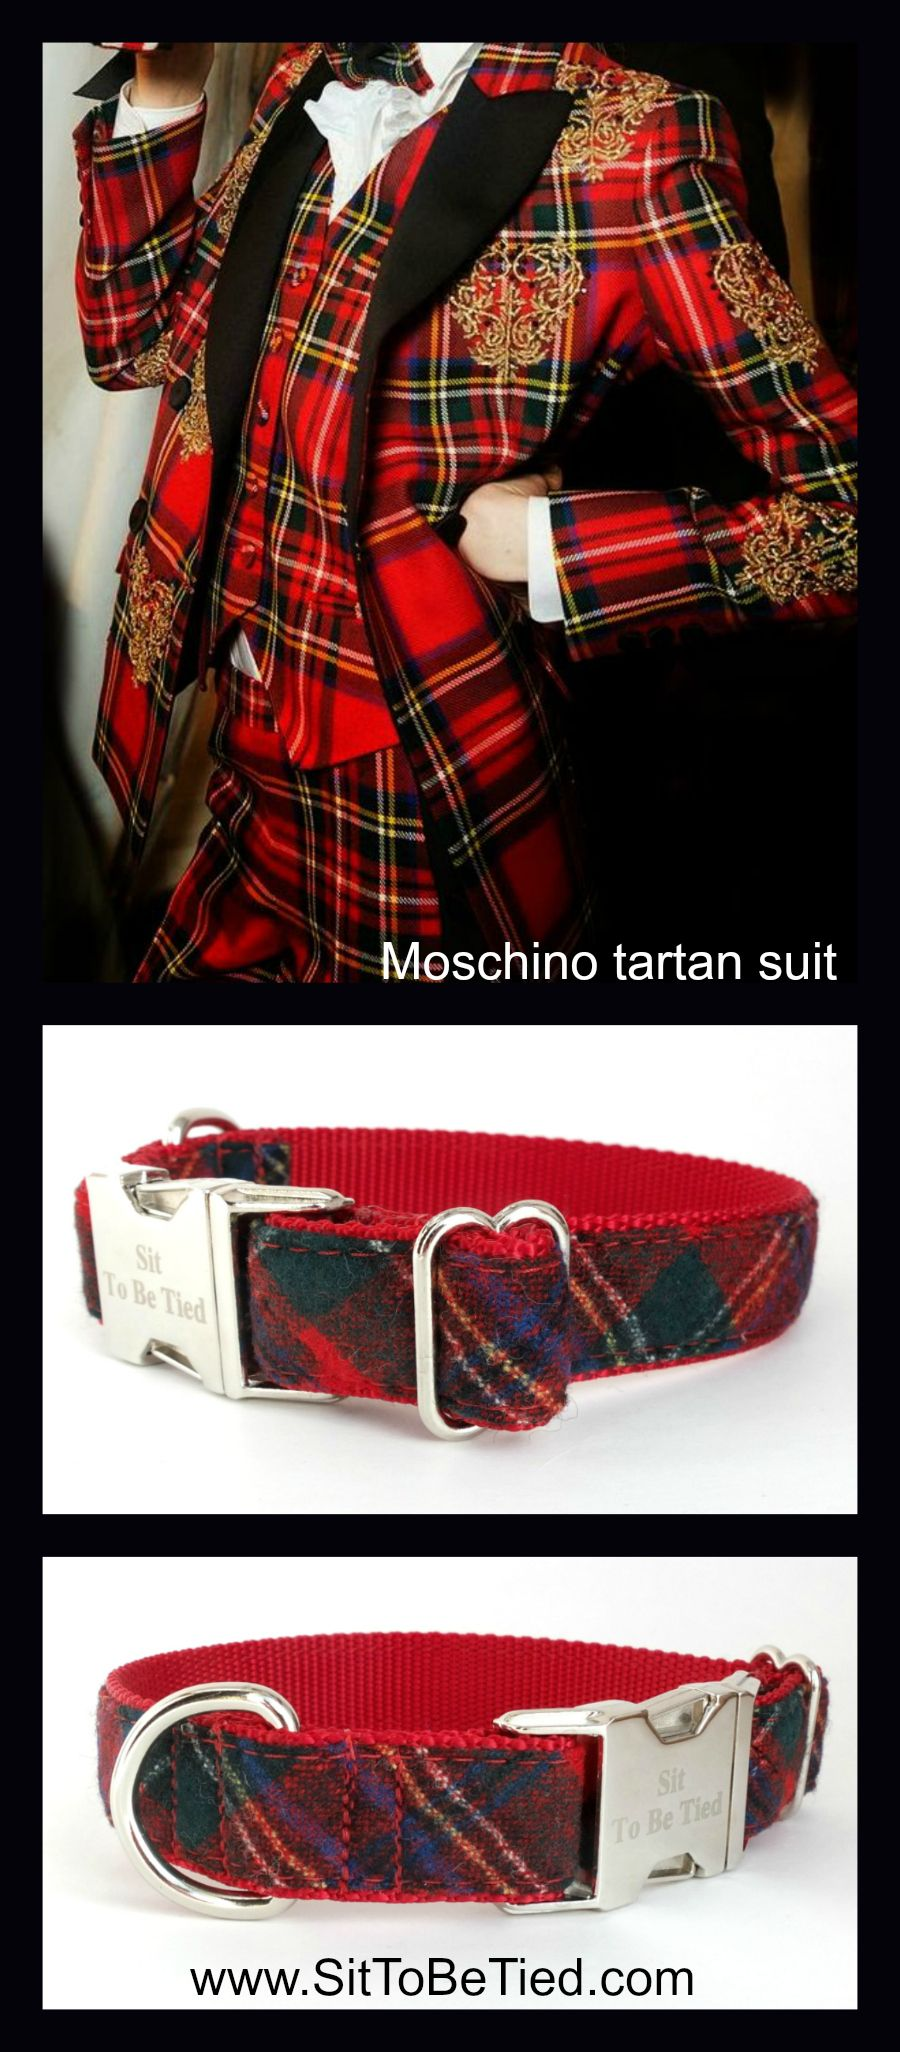 #Tartan dog collar. Tartan fashion. For her: Moschino tartan suit.  For the dog: Christmas dog collar in red tartan, upcycled wool necktie. $27.99